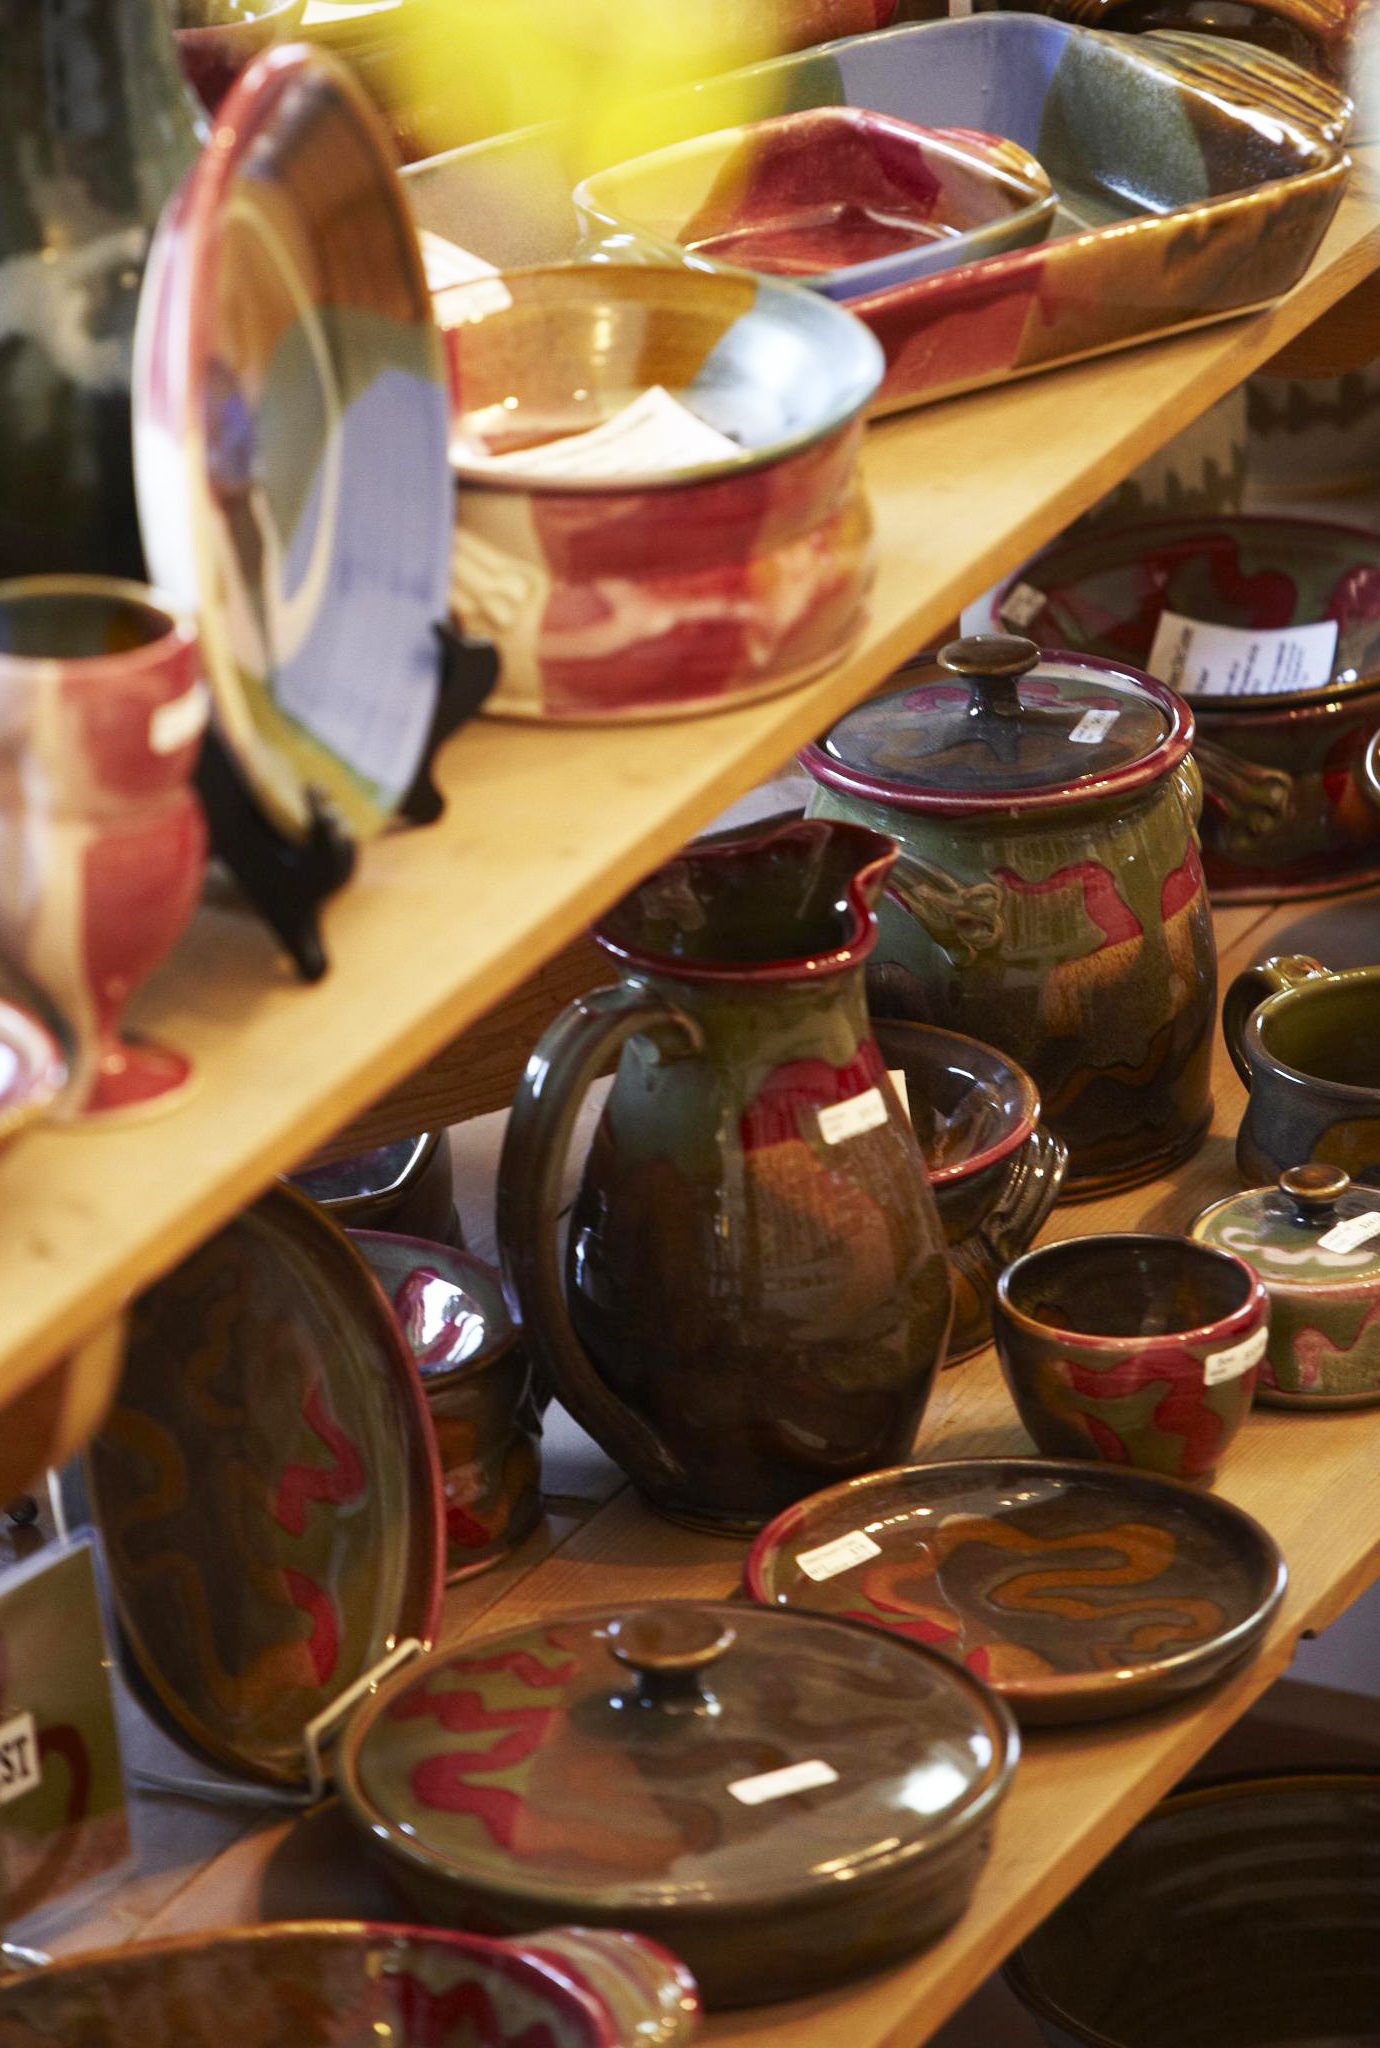 Handmade pieces tempt at Mississippi Mud Pottery.